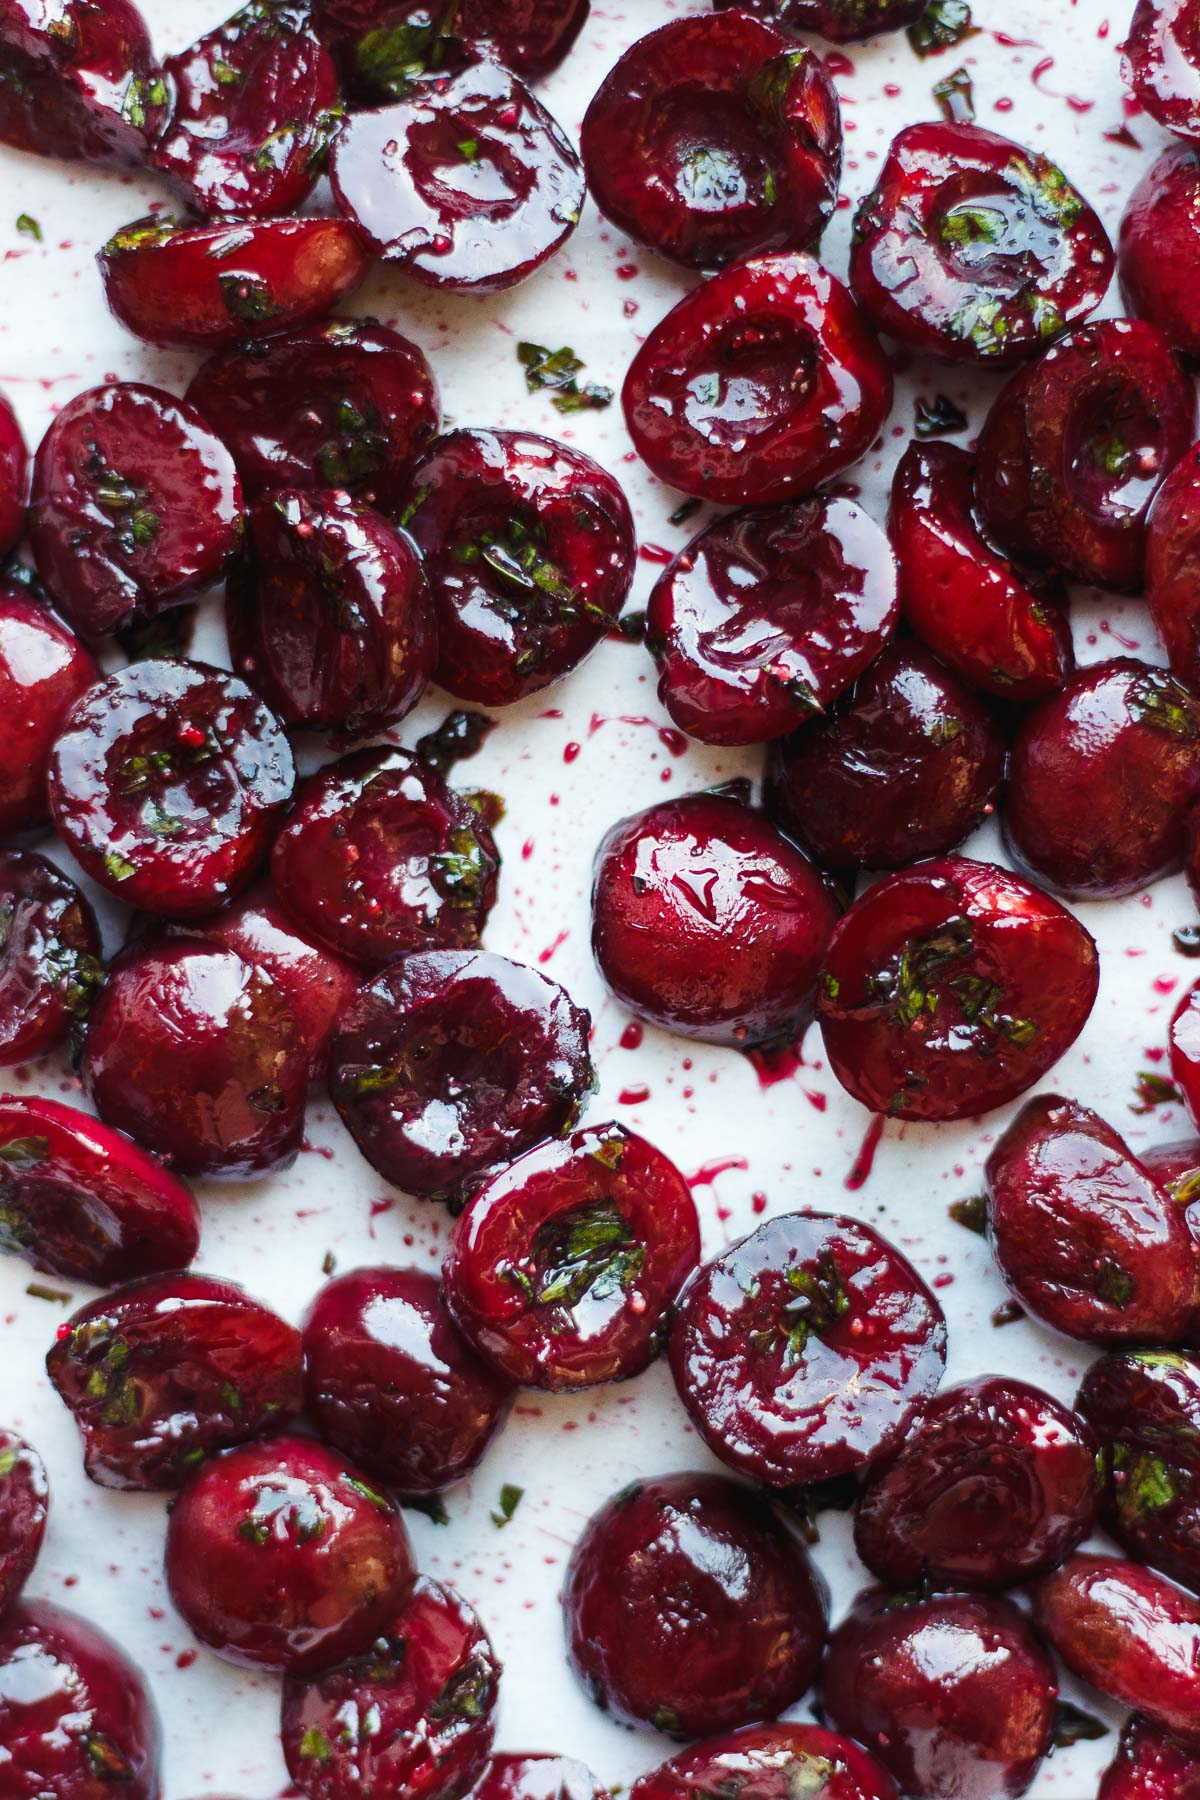 SAVORY ROASTED CHERRIES